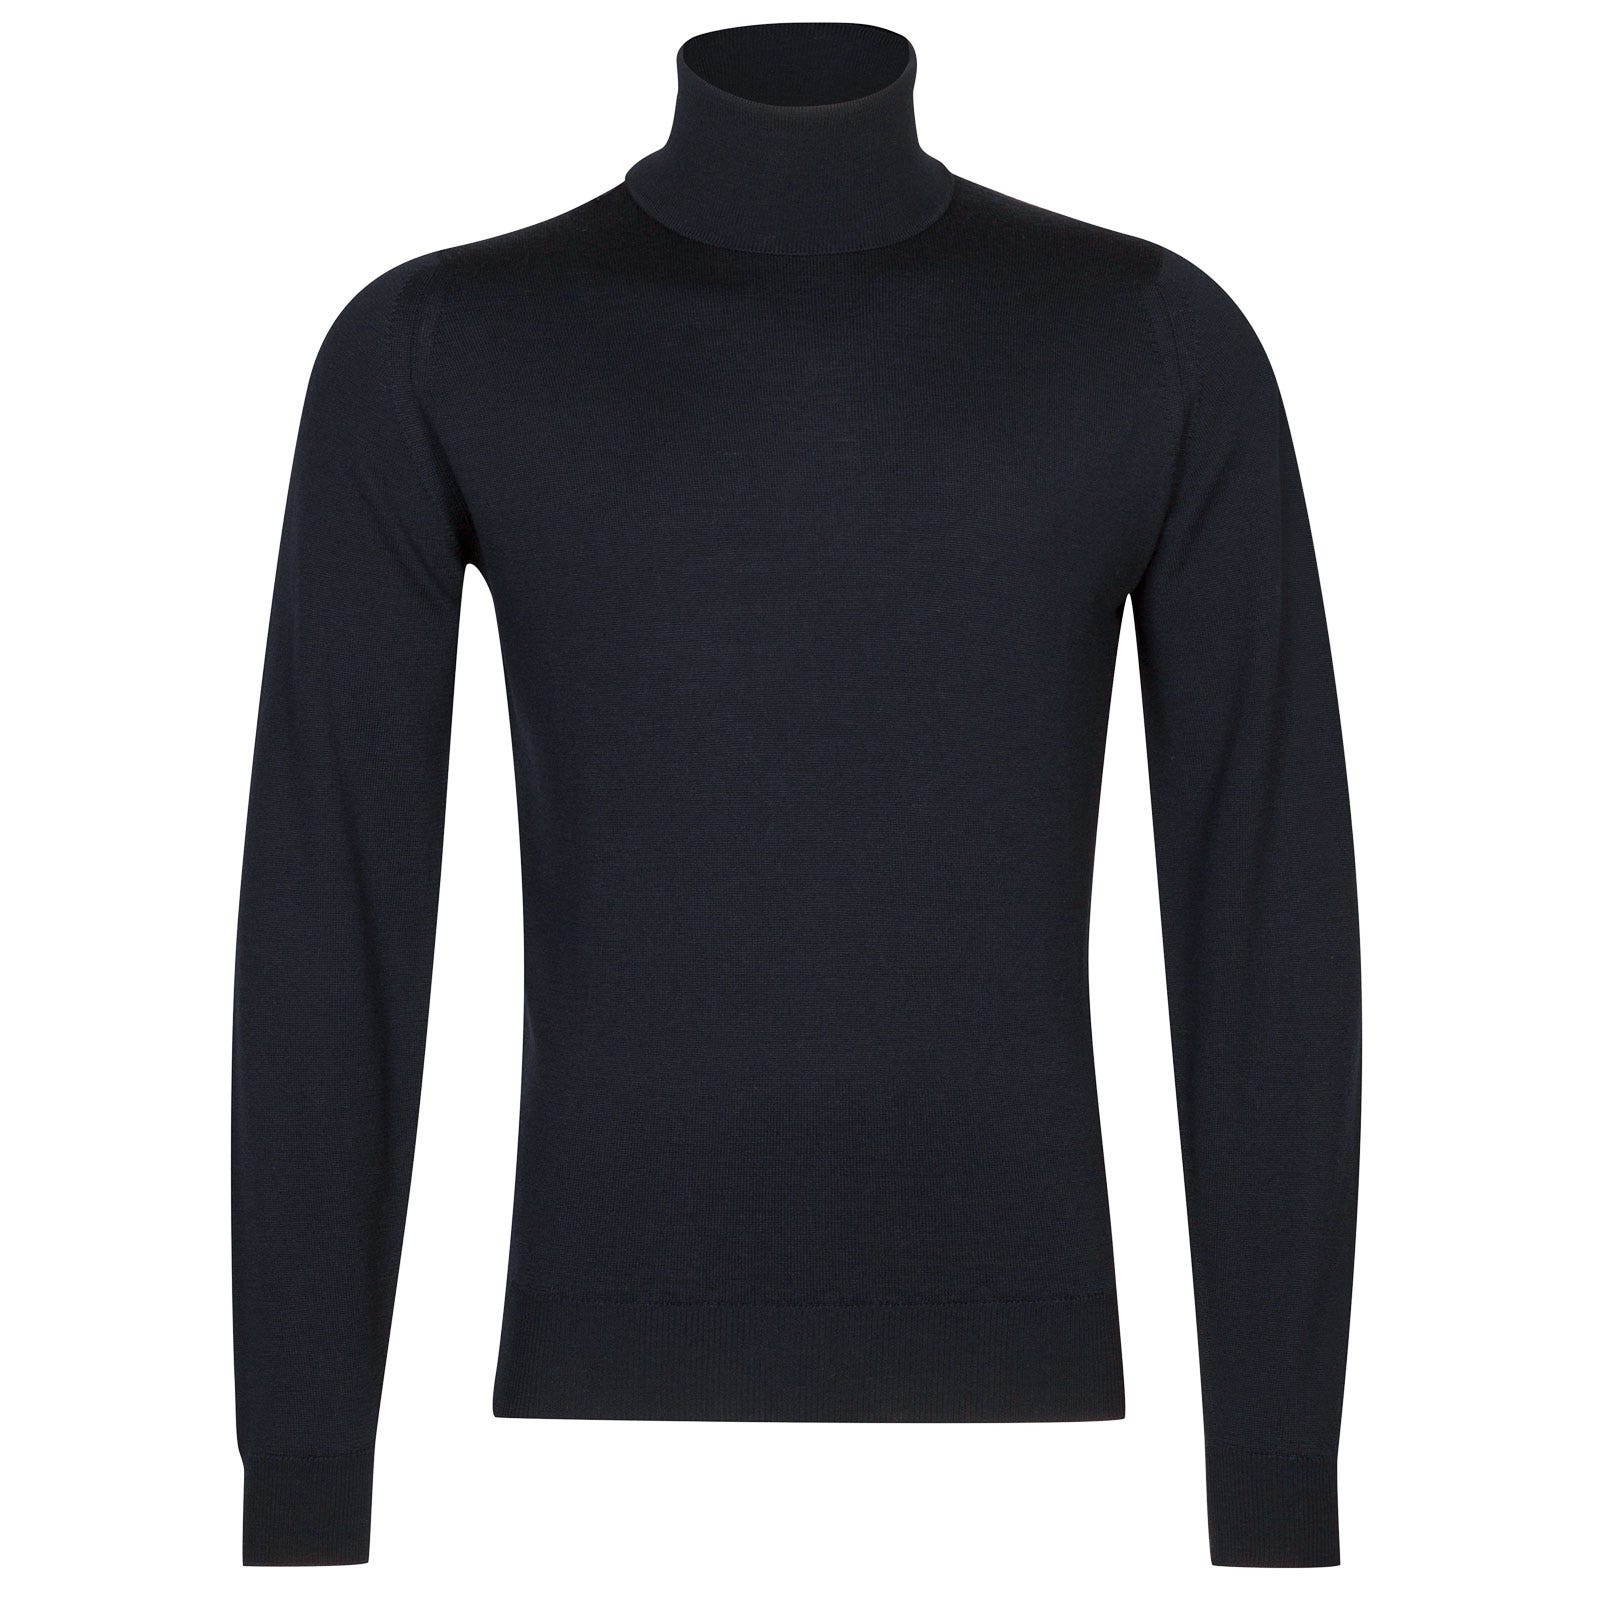 John Smedley connell Merino Wool Pullover in Midnight-M